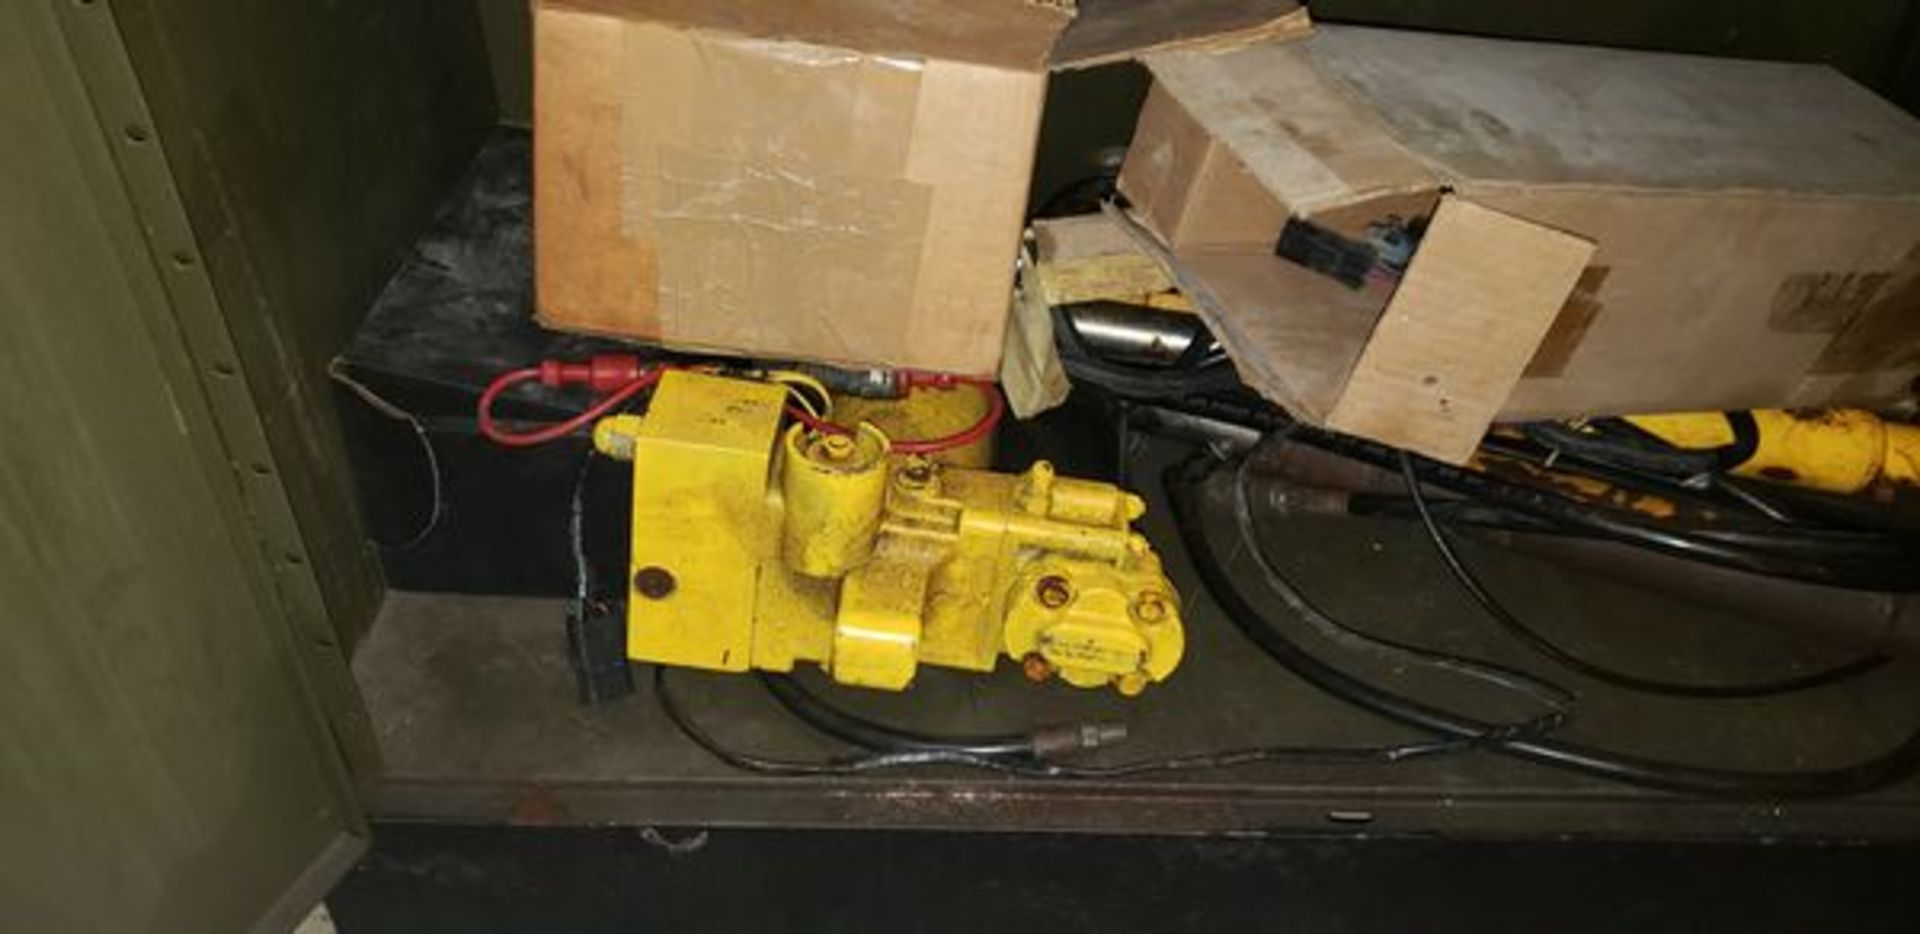 LOT OF S-10 AND PLOW PARTS WITH 2 DOOR METAL STORAGE CABINENT - Image 15 of 16